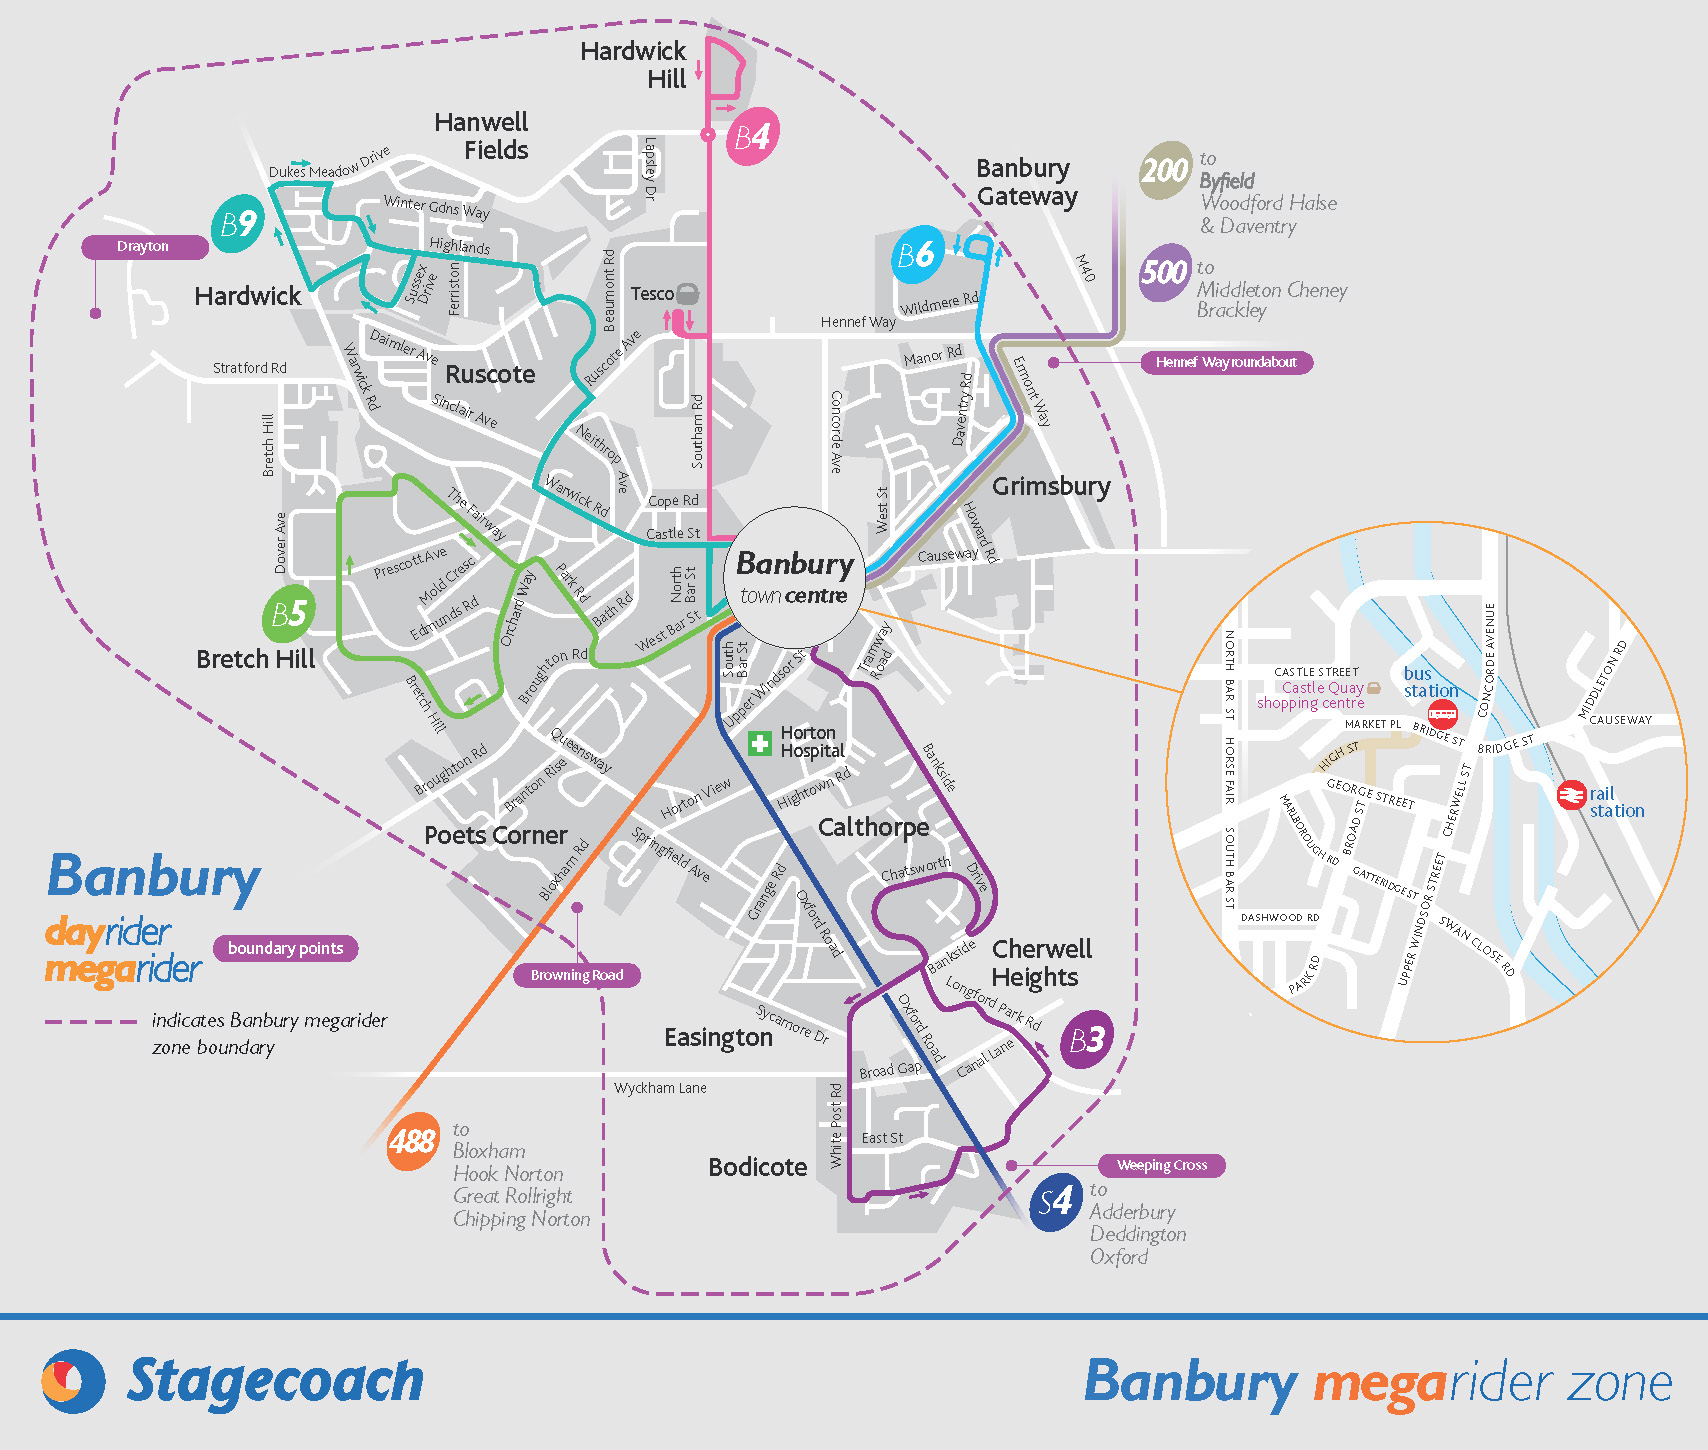 Banbury town network map